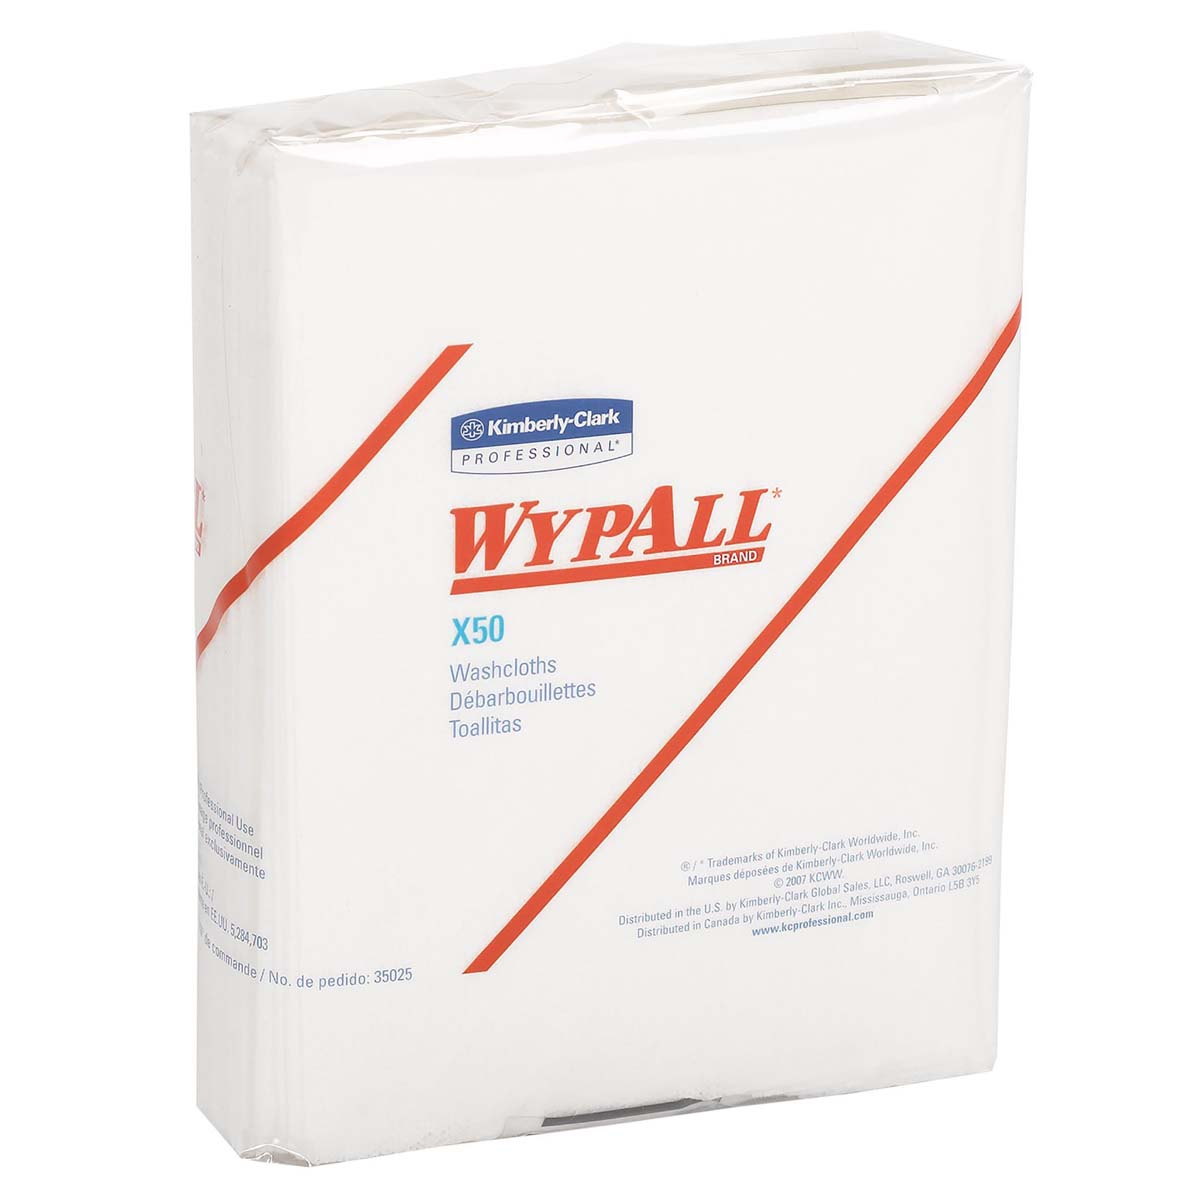 Wypall X50 Disposable Wipers (35025), Strong for Extended Use, Quarterfold, White, 32 Packs / Case, 26 Sheets / Pack, 832 Sheets / Case